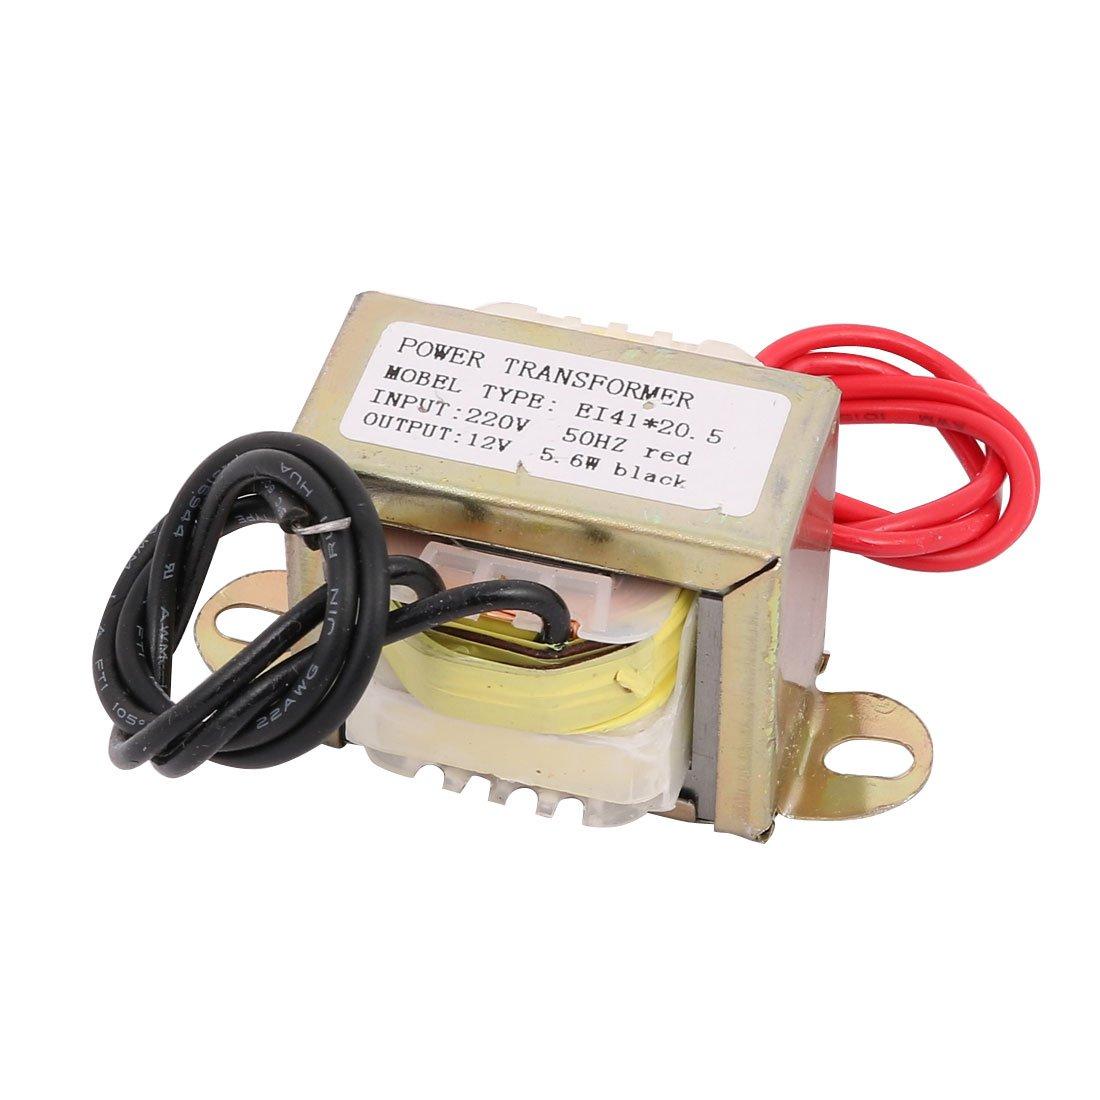 sourcingmap 220V Input 12V 5.6W Output EI-41 * 20.5 Ferrite Core Power Transformer Converter